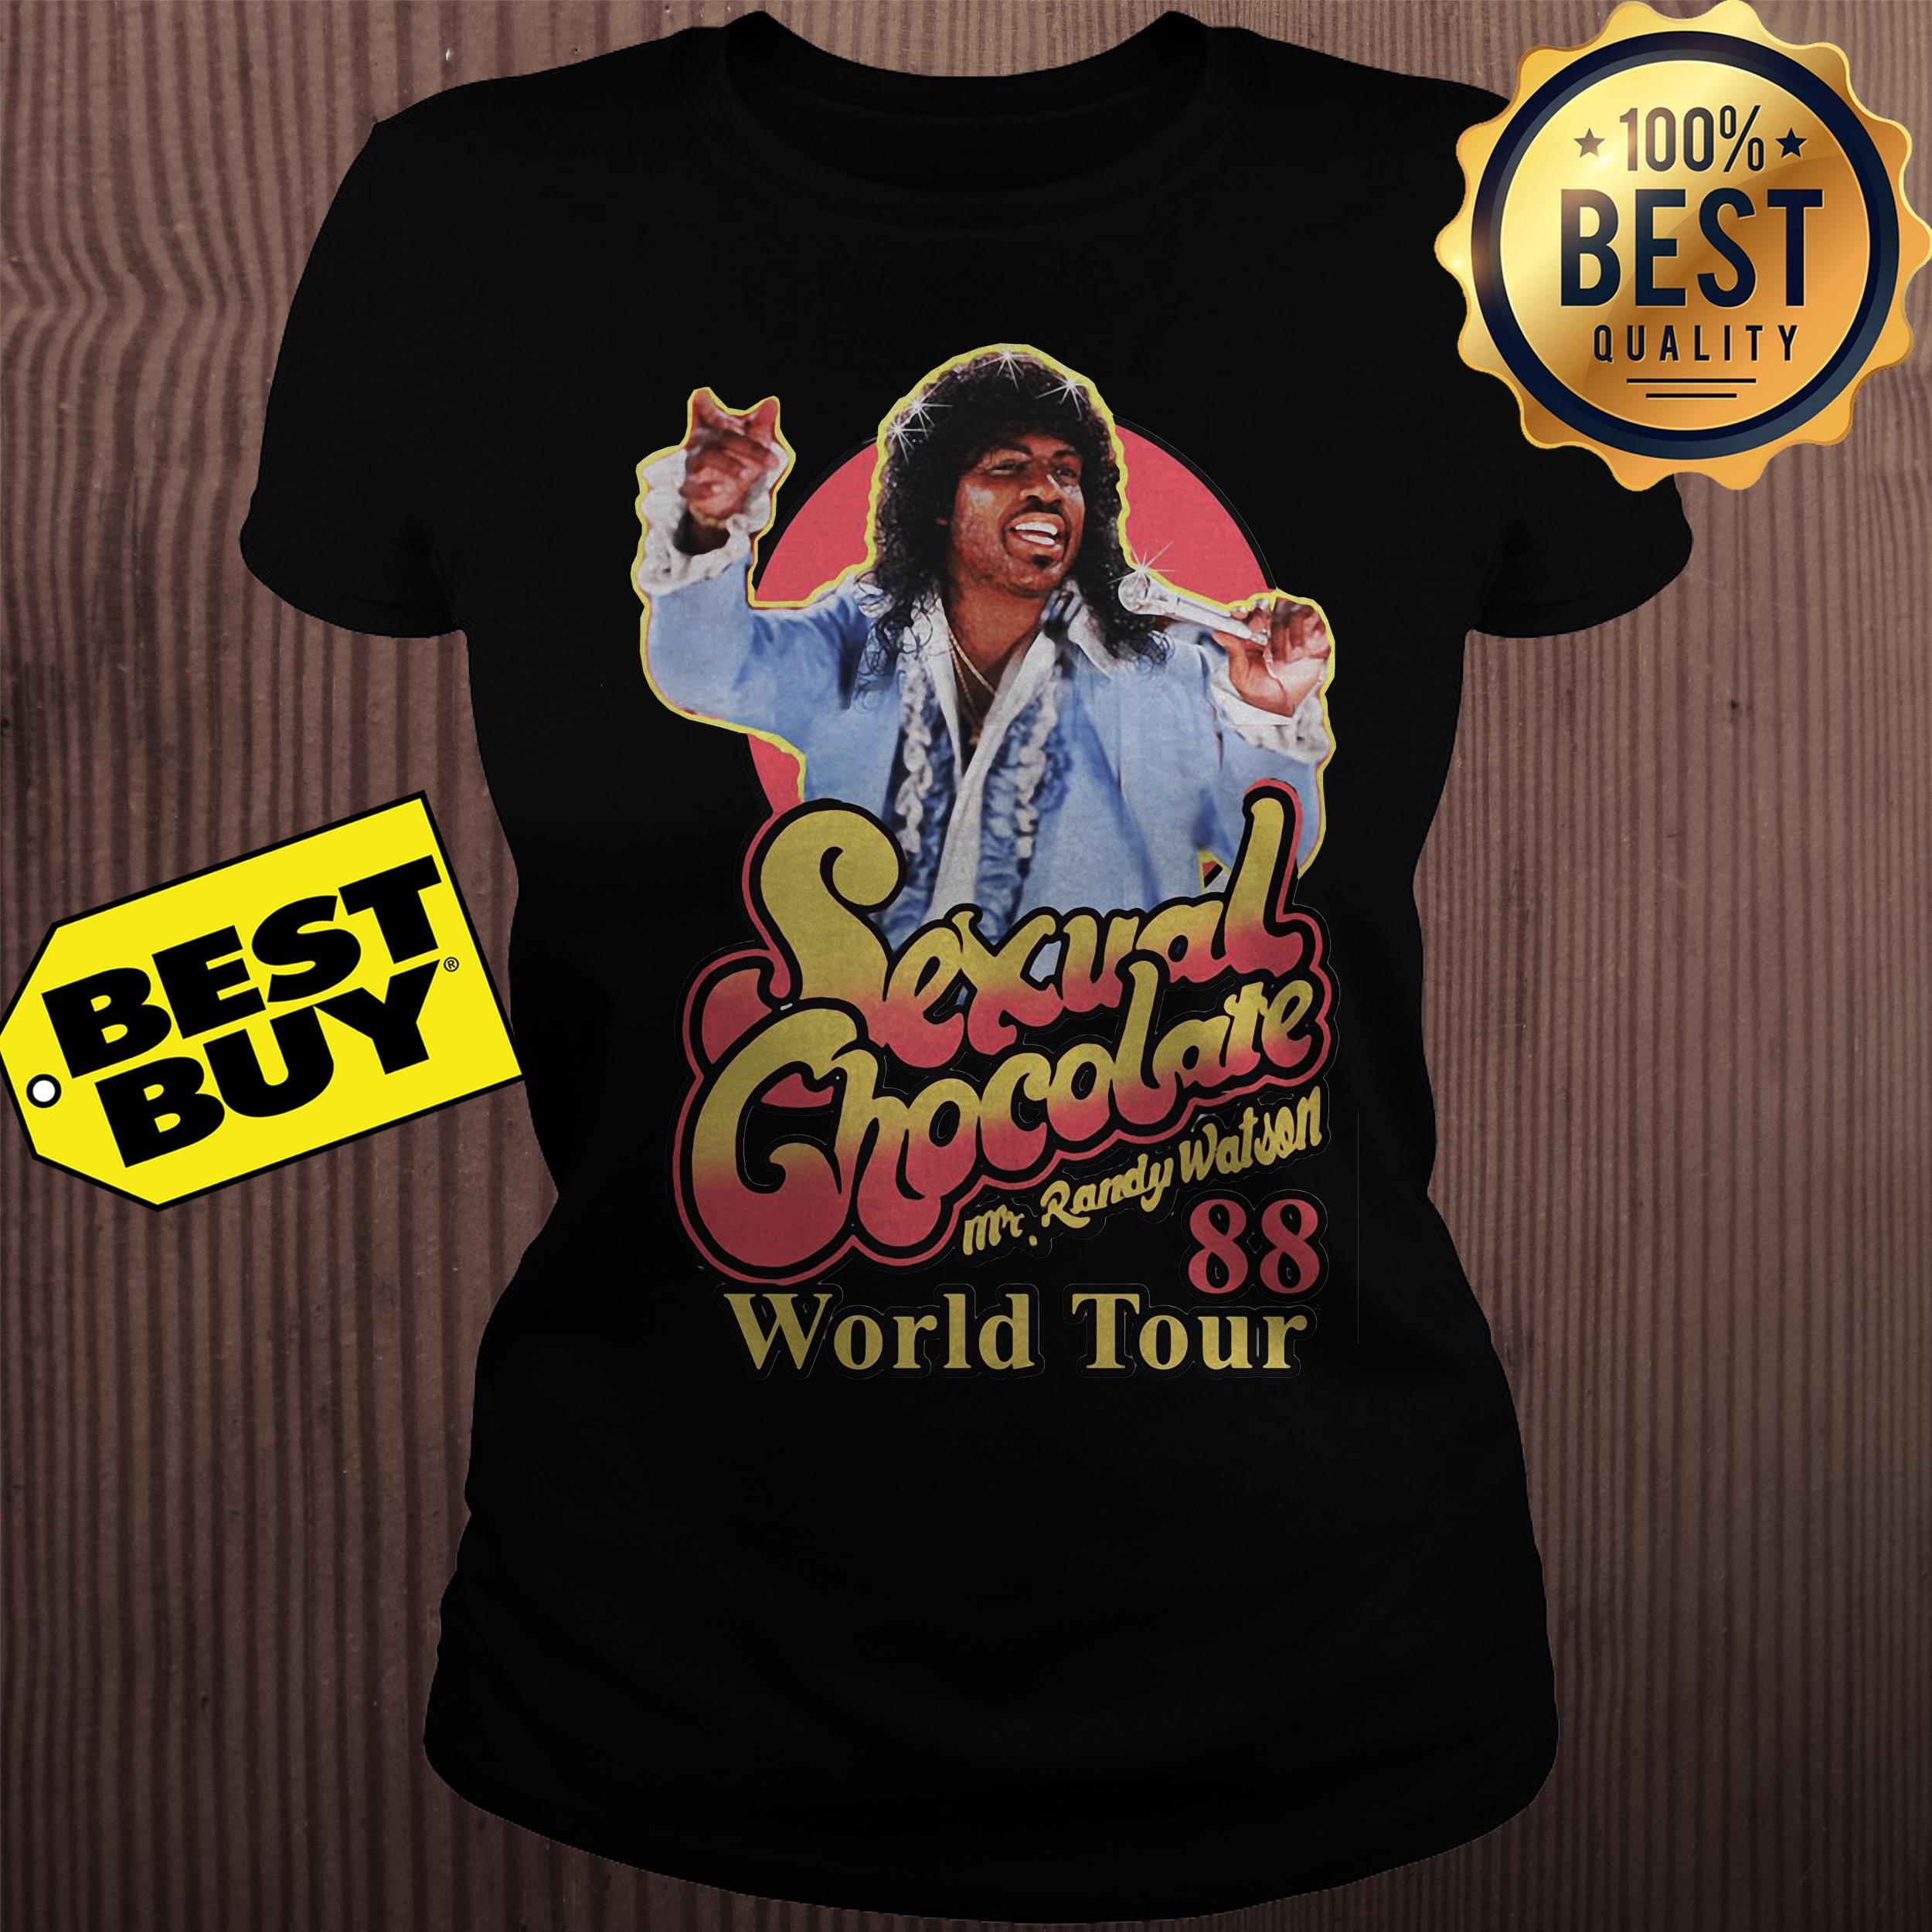 Sexual chocolate Mr.Randy Watson 88 world tour ladies tee